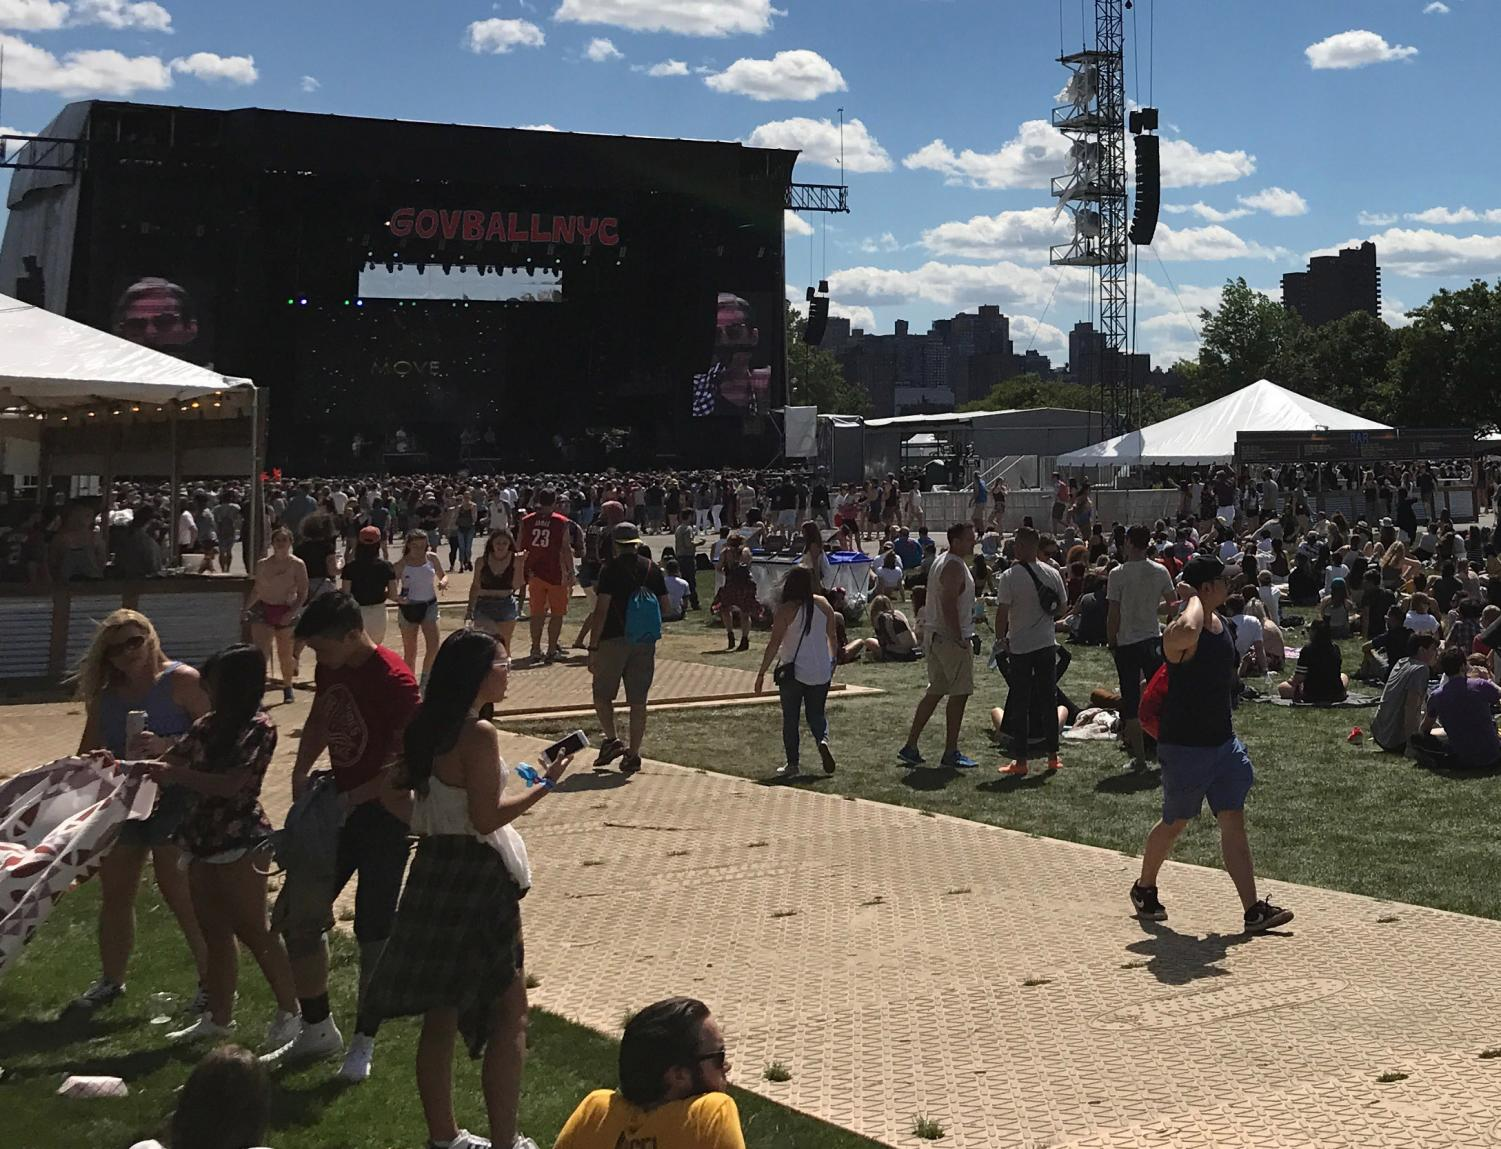 People from around the world enjoy the 2017 Governors Ball Music Festival.